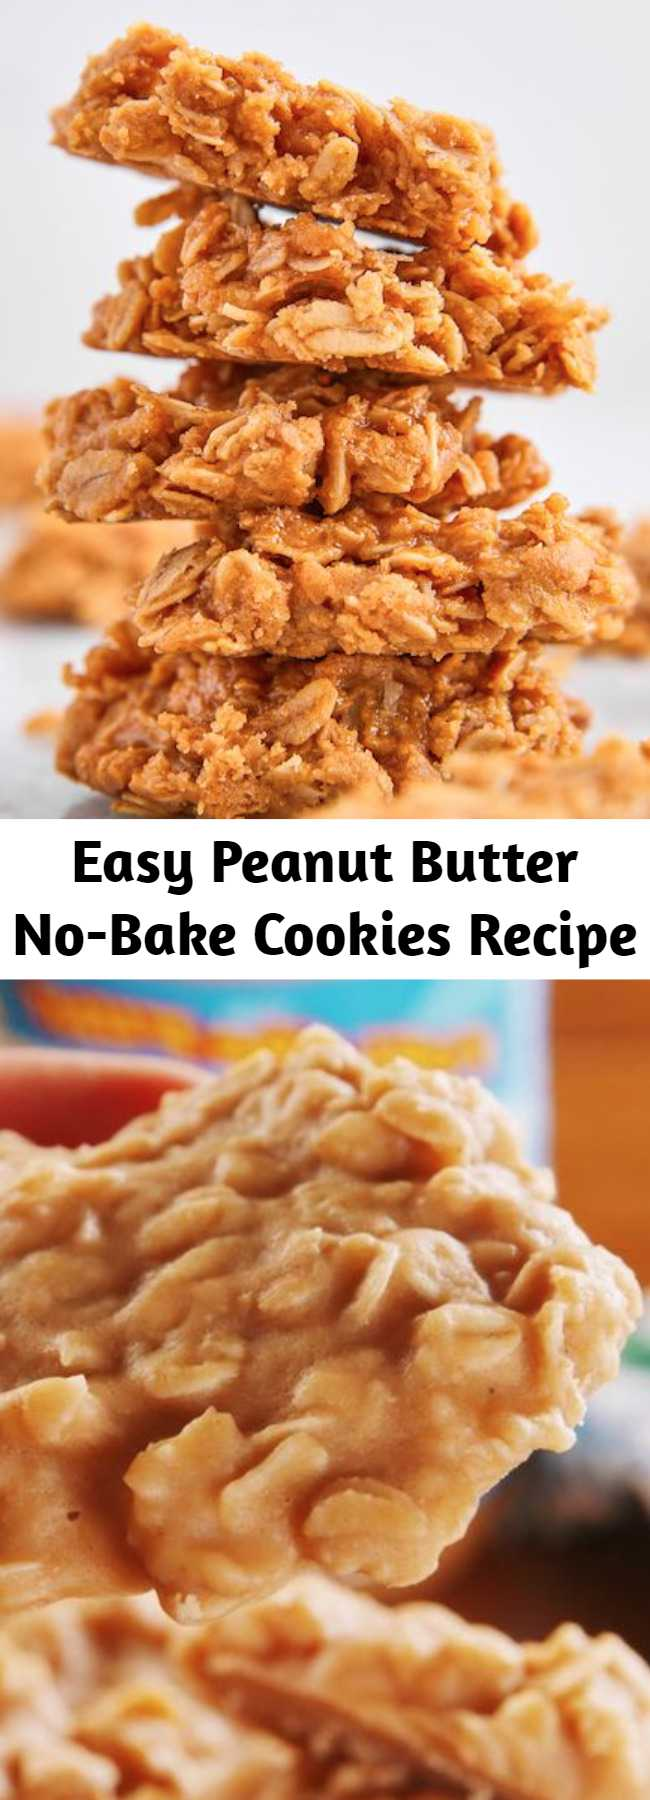 Easy Peanut Butter No-Bake Cookies Recipe - Loaded with sweet-salty peanut butter and chewy oats, these cookies are perfect for when you're craving dessert but don't have the time or patience to wait for your oven to preheat. The texture is a bit more fudgy than your average cookie, and WE'RE OBSESSED. #easy #recipe #nobake #oatmeal #peanut #peanutbutter #butter #PB #healthy #salt #vanilla